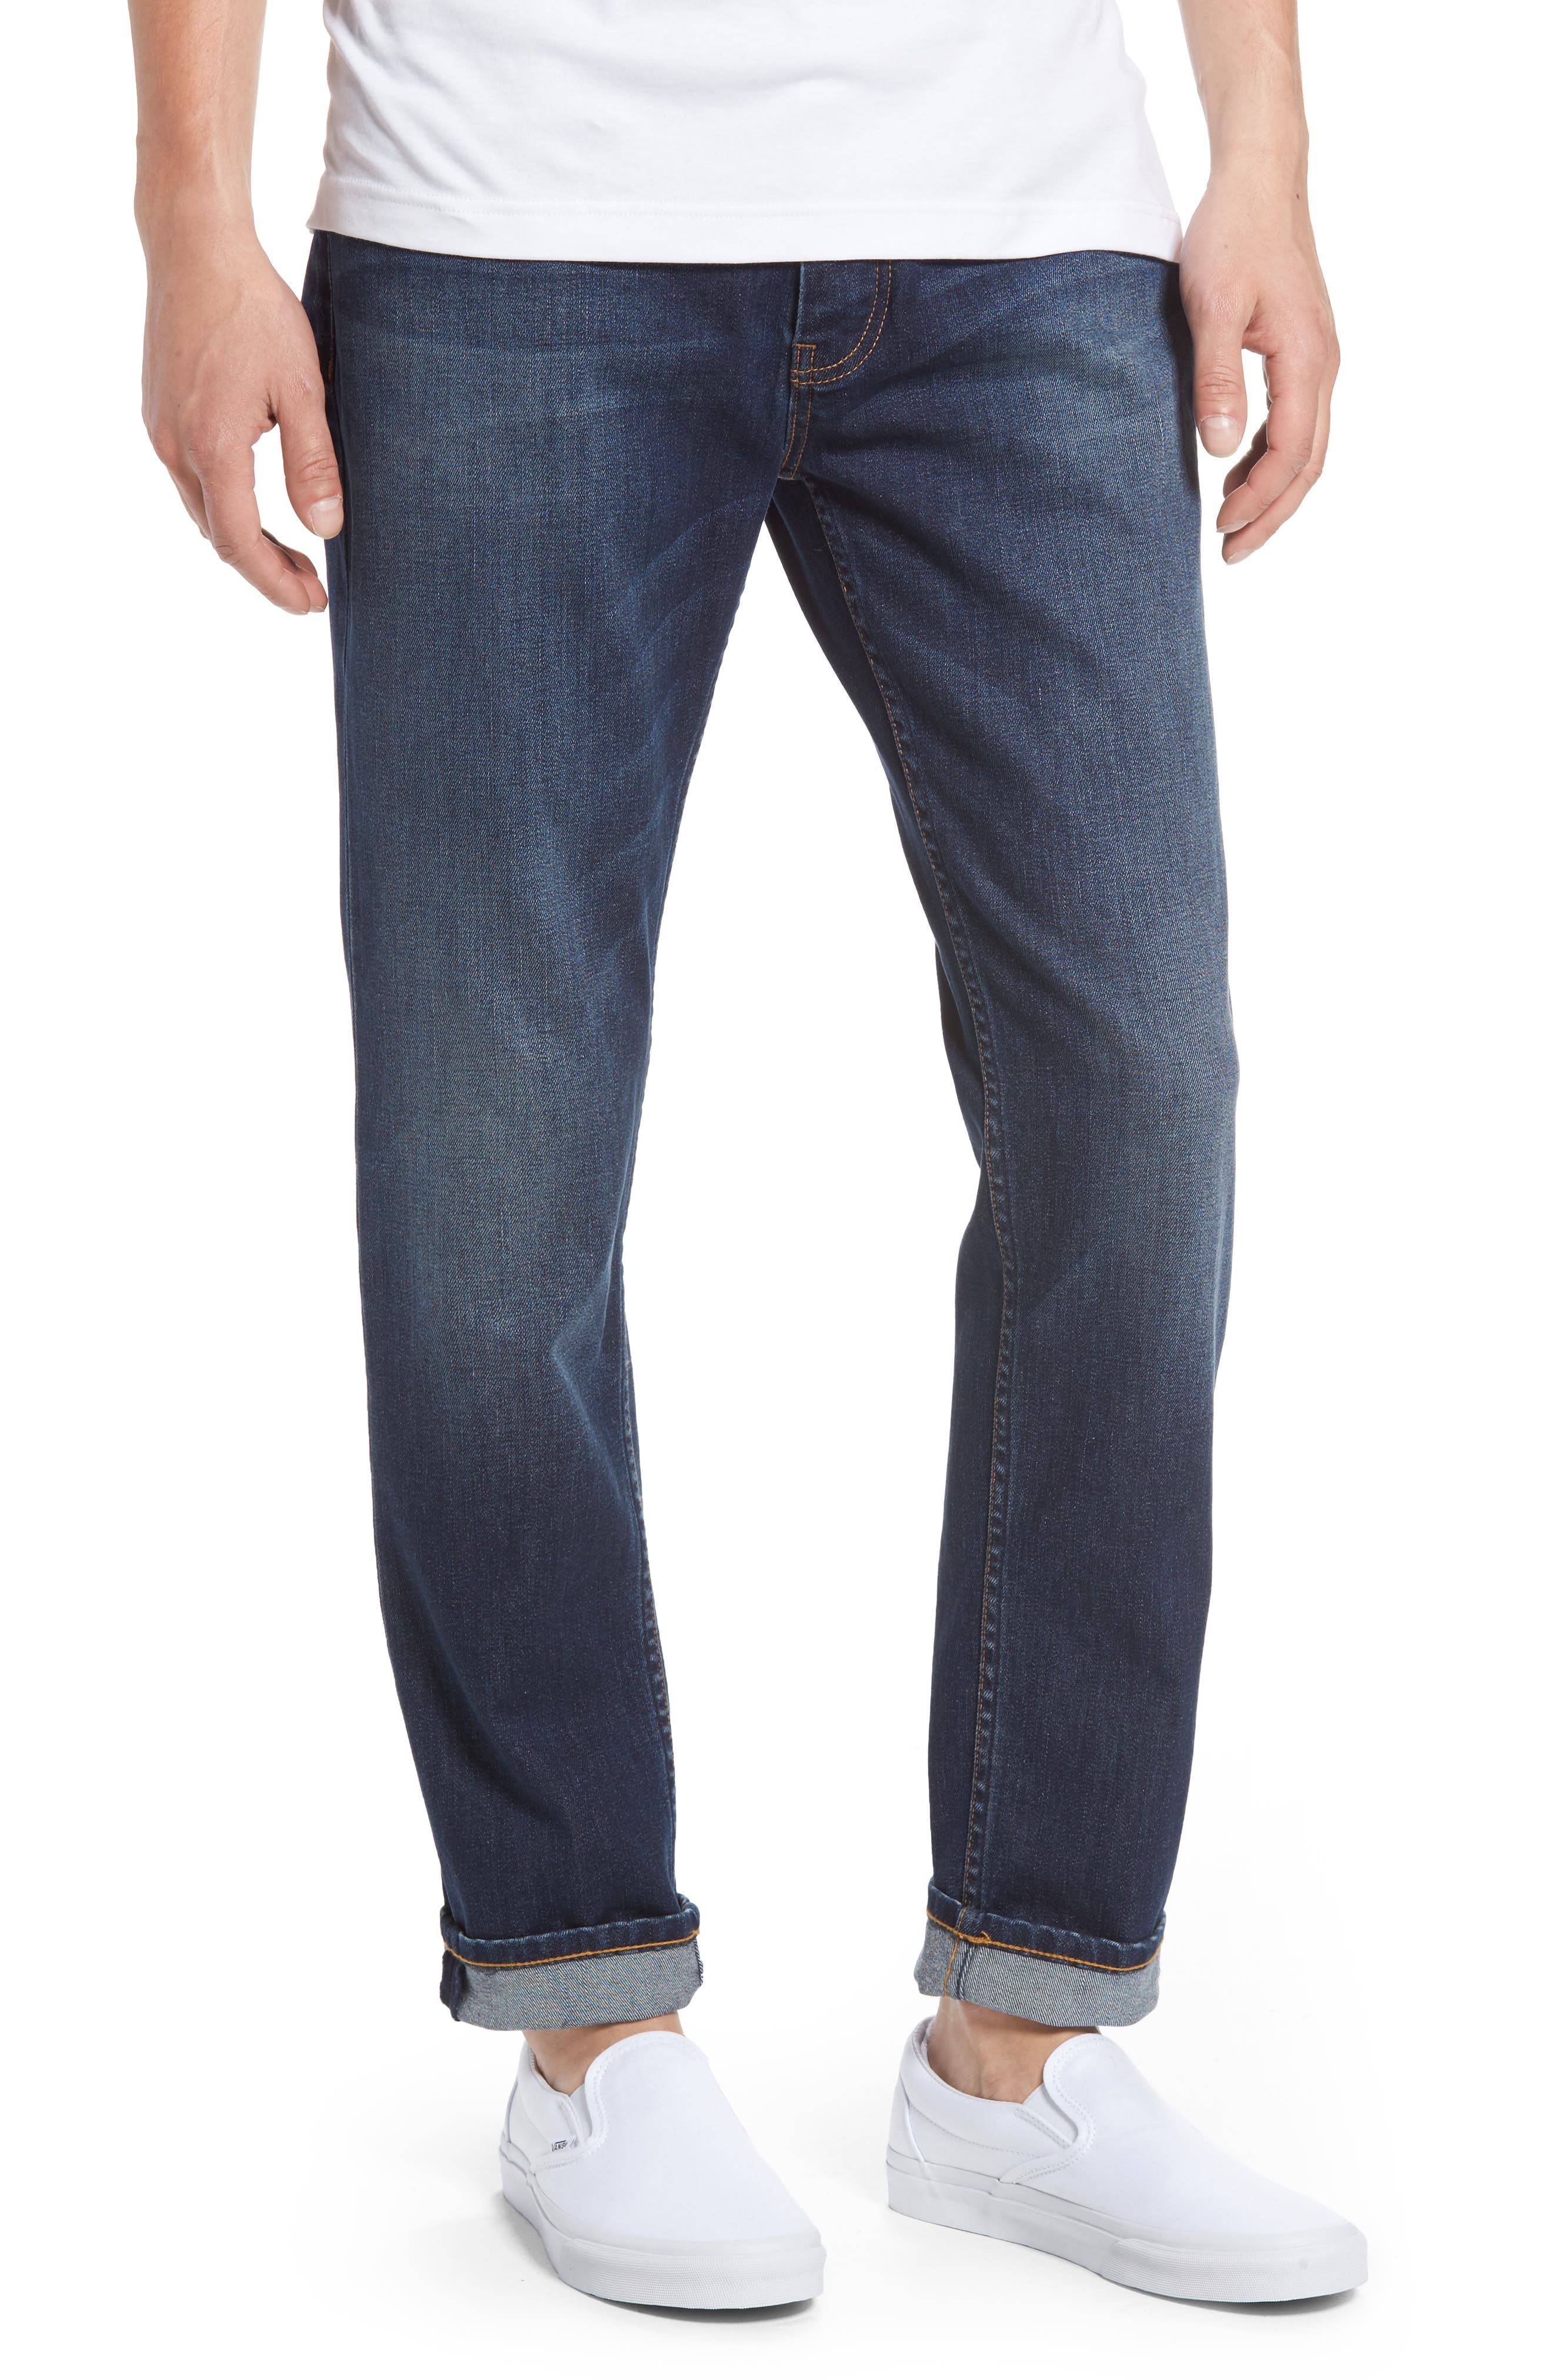 Stretch Skinny Fit Jeans,                             Main thumbnail 1, color,                             Indigo